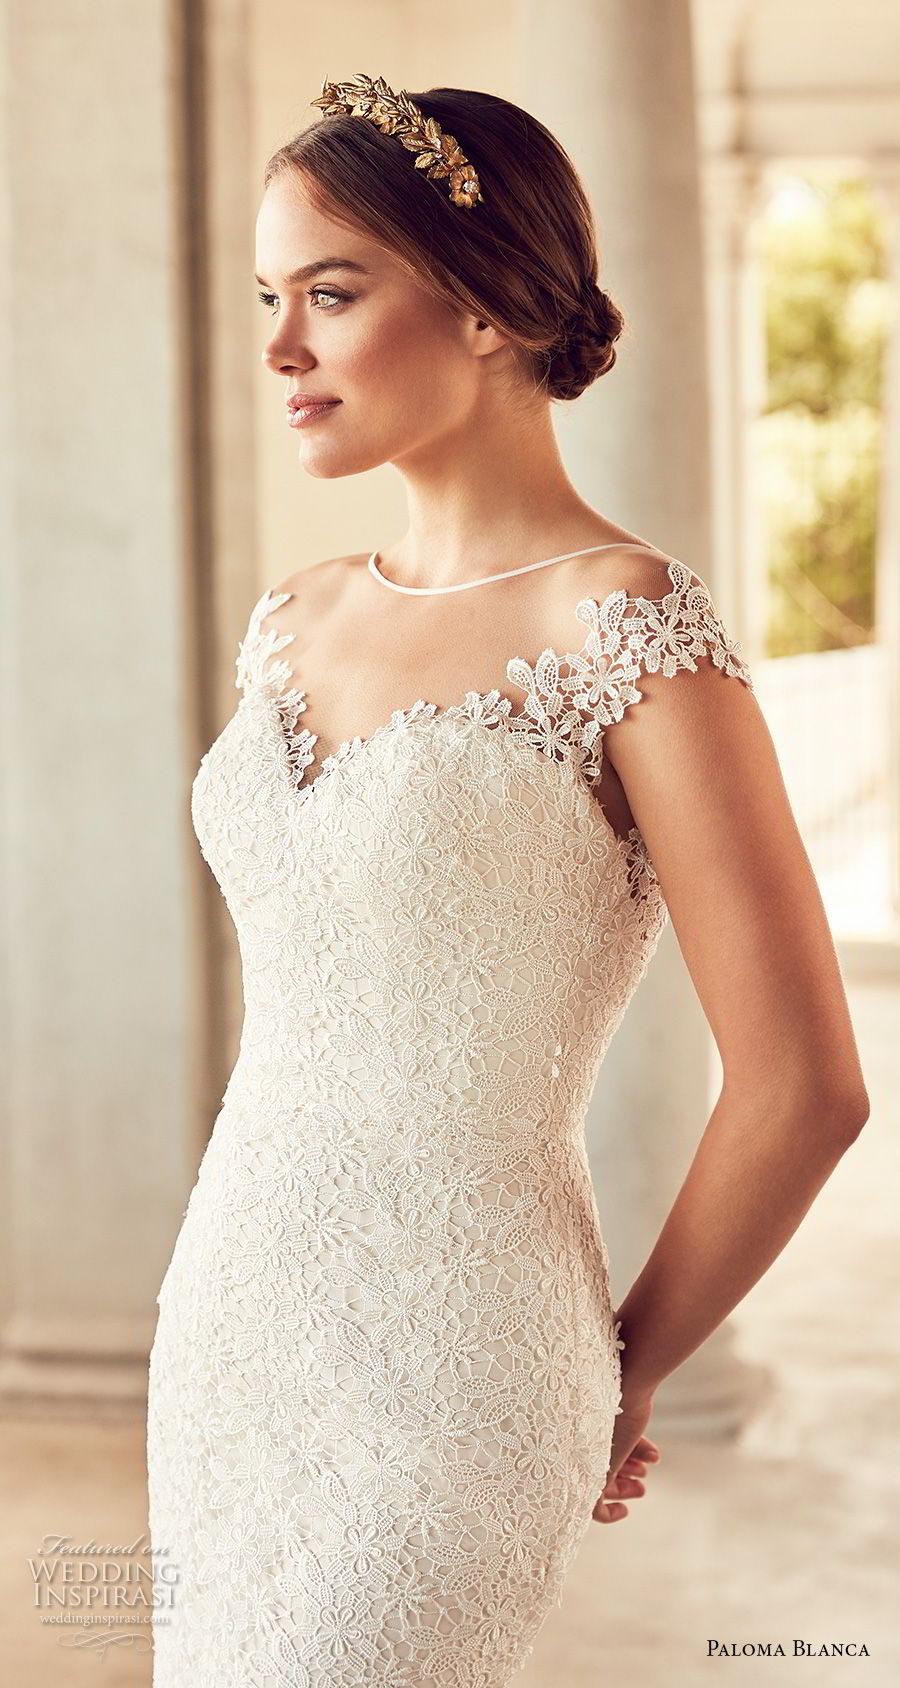 paloma blanca spring 2018 bridal cap sleeves illusion bateau sweetheart neckline full embellishment elegant sheath fit and flare wedding dress open v back chapel train (3) zv